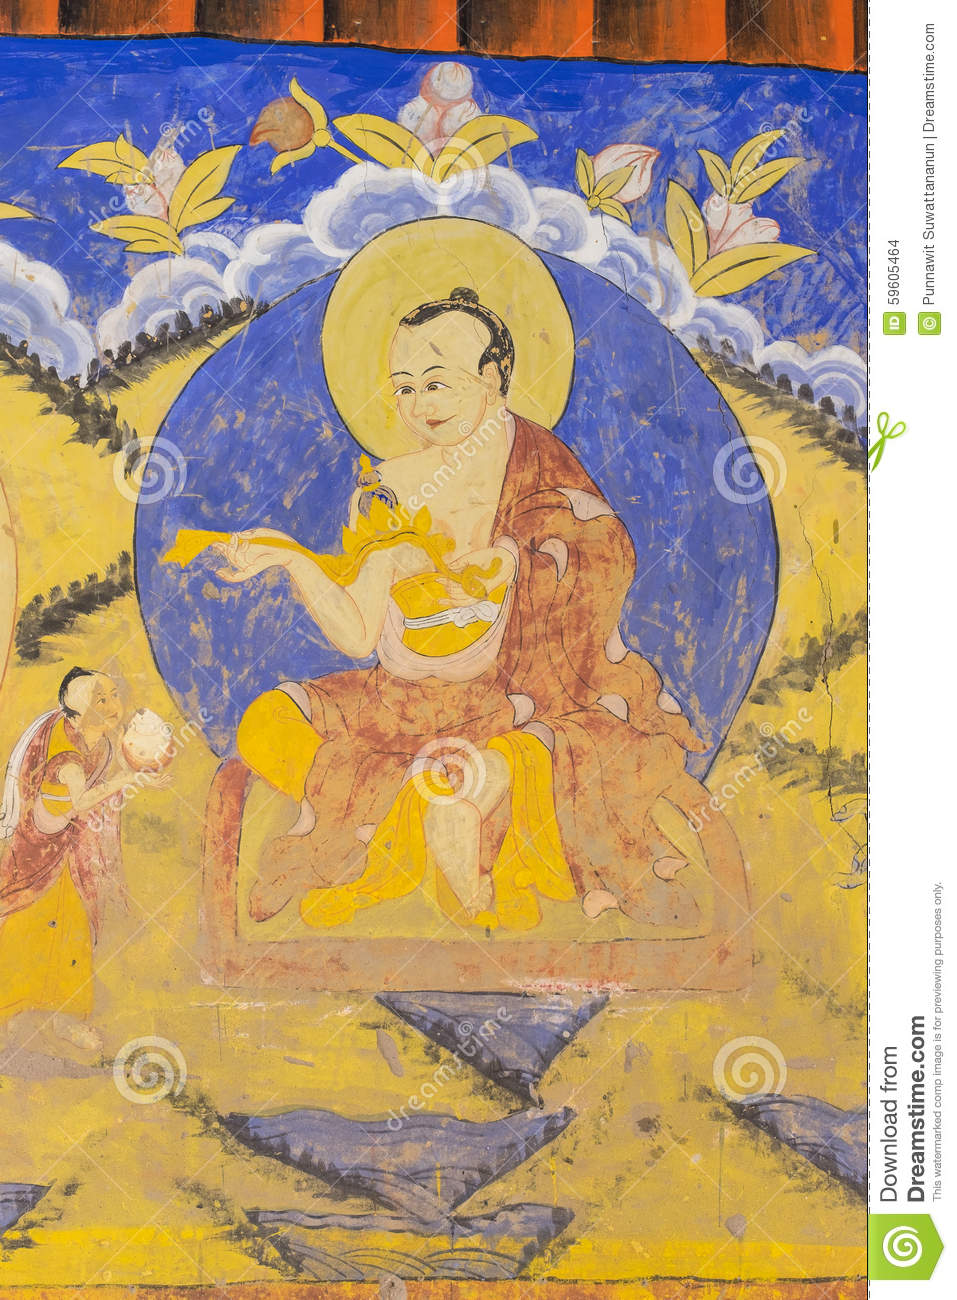 Tibetan Wall Painting Style At Thiksey Monastery Stock Photo - Image ...